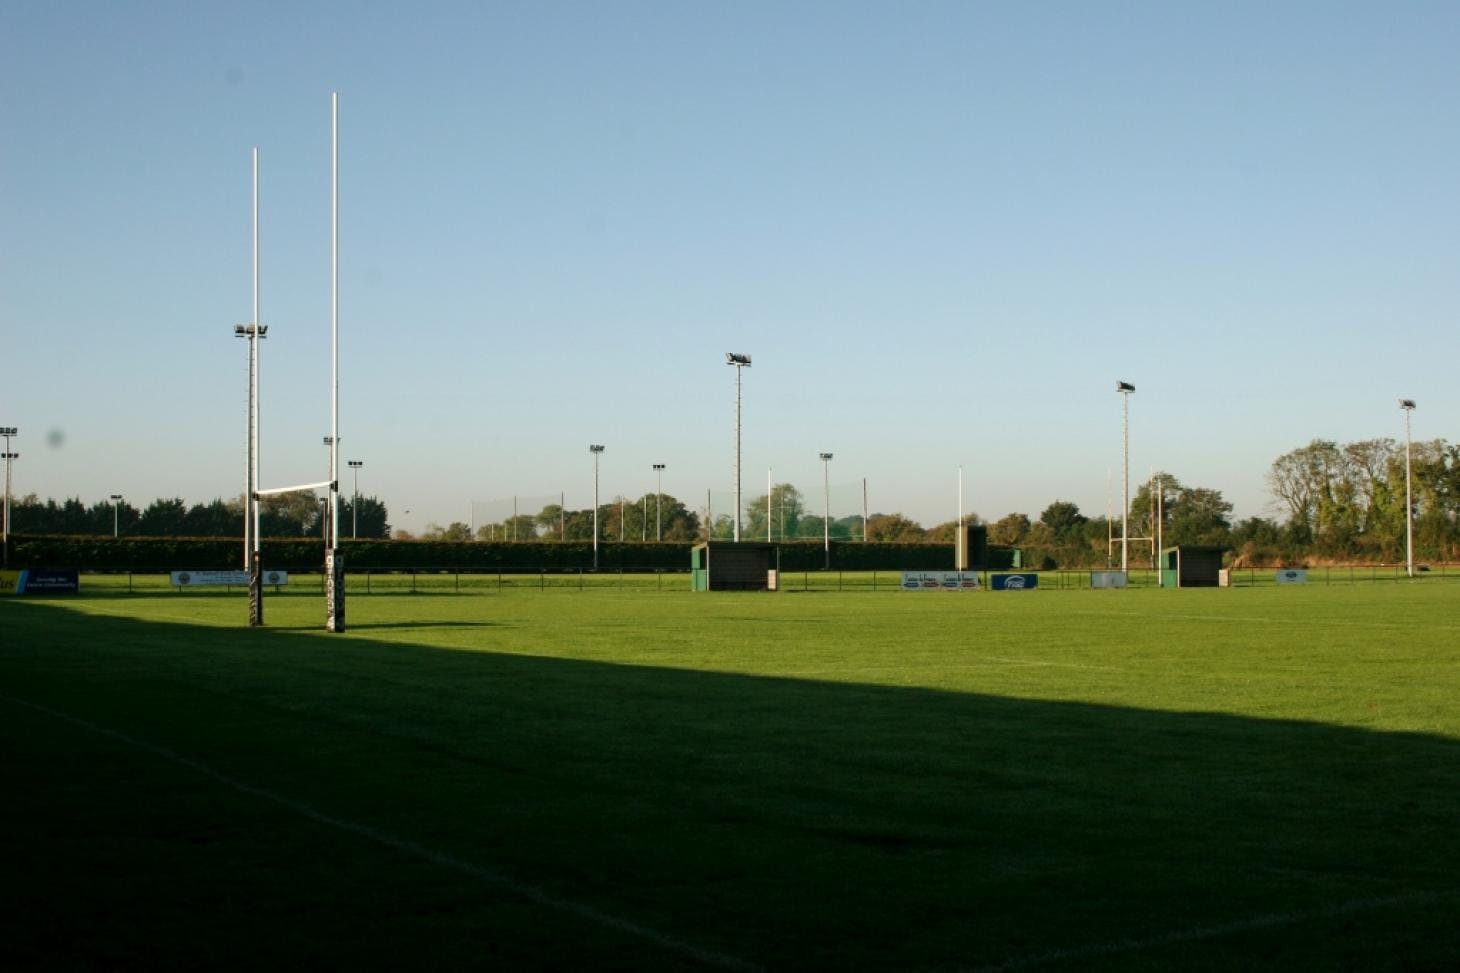 Westmanstown Sports & Conference Centre Union | Grass rugby pitch